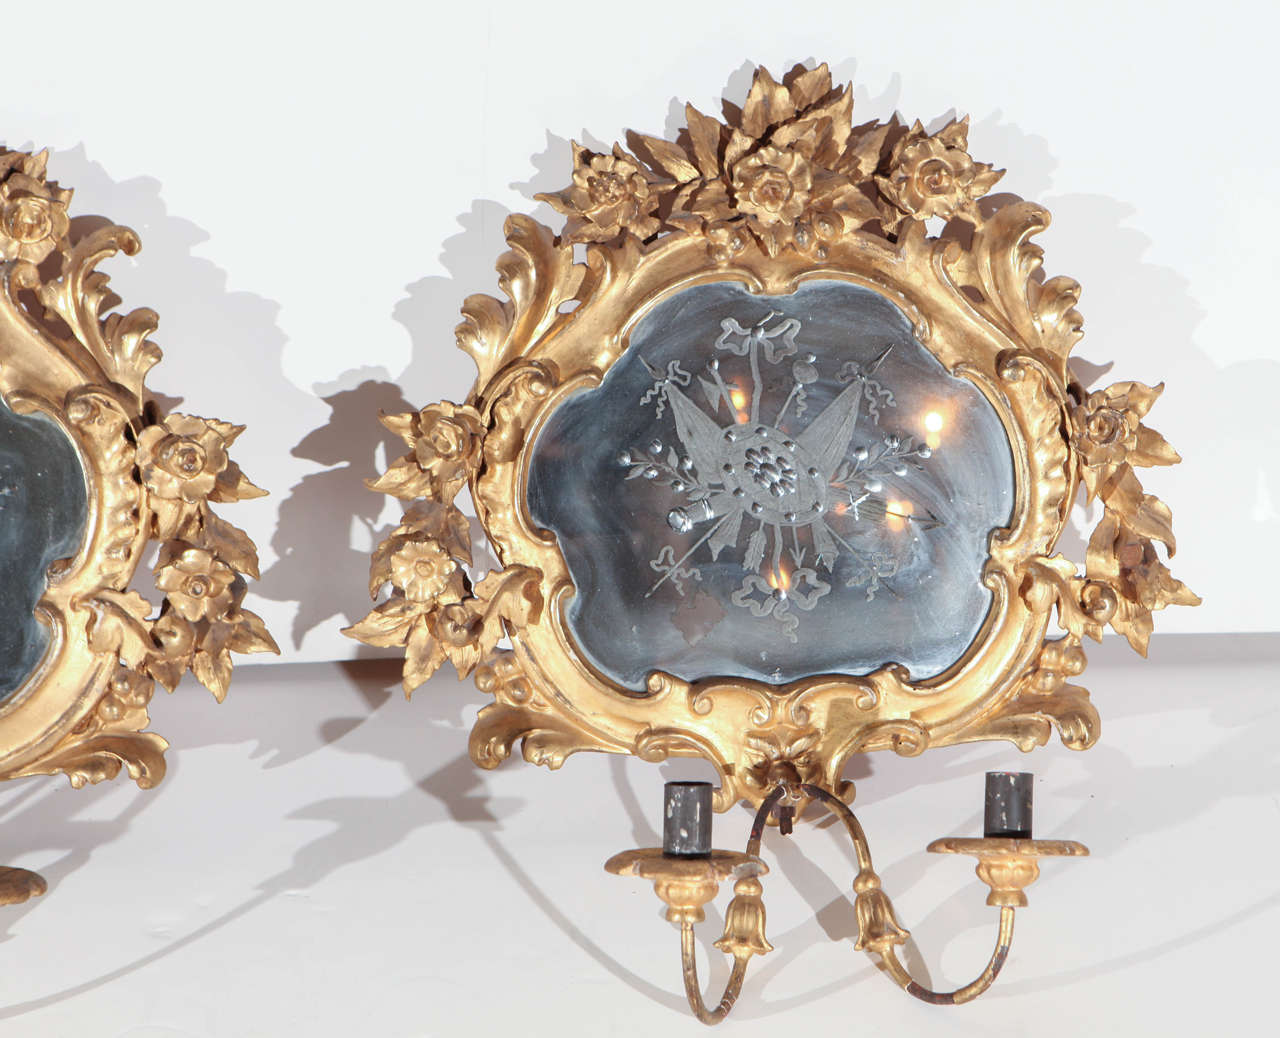 19th Century, French Wall Sconces In Good Condition For Sale In Newport Beach, CA